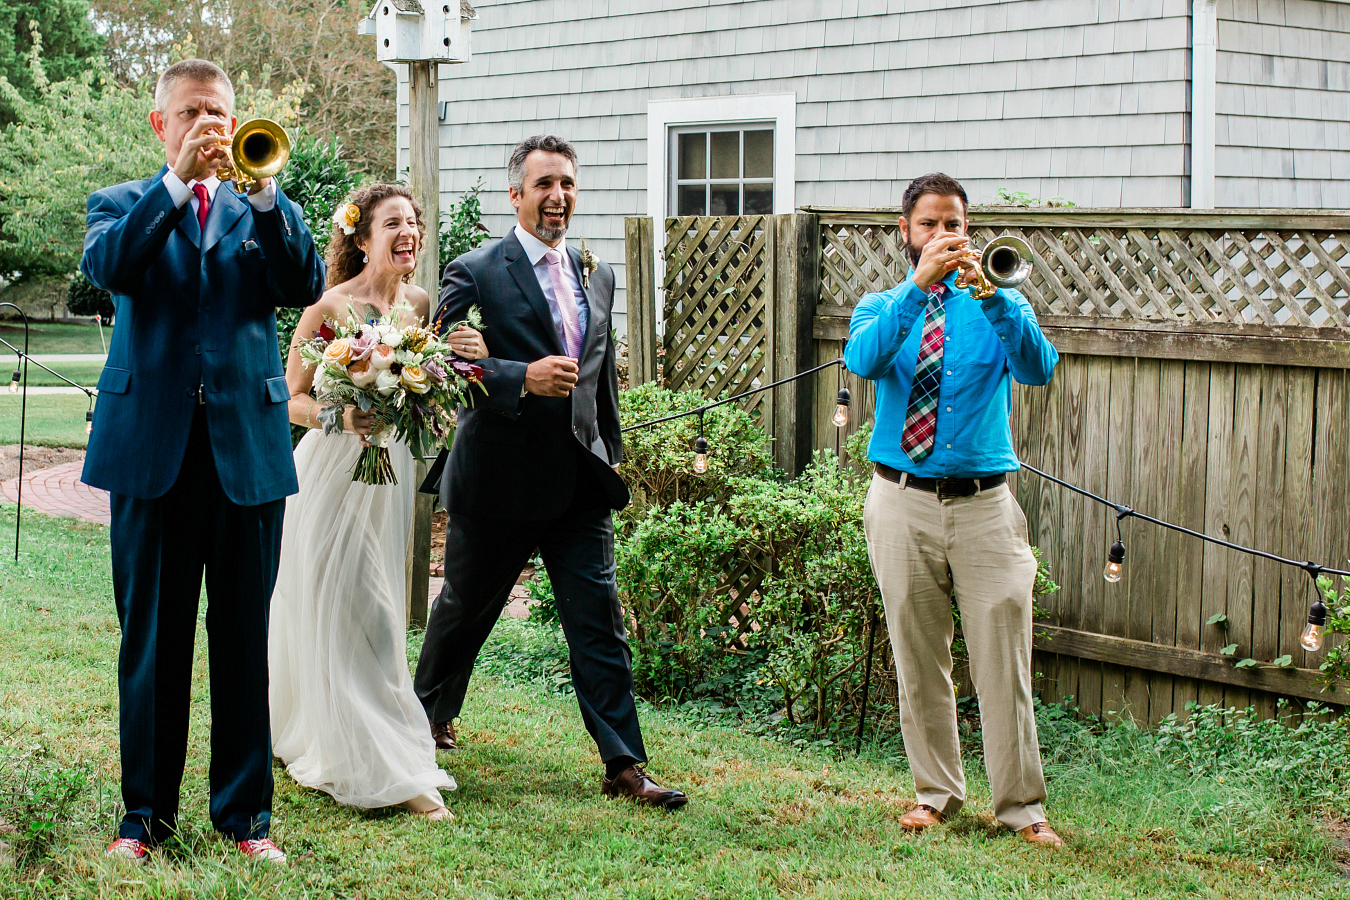 Bride and Groom Announced to Rocky Theme